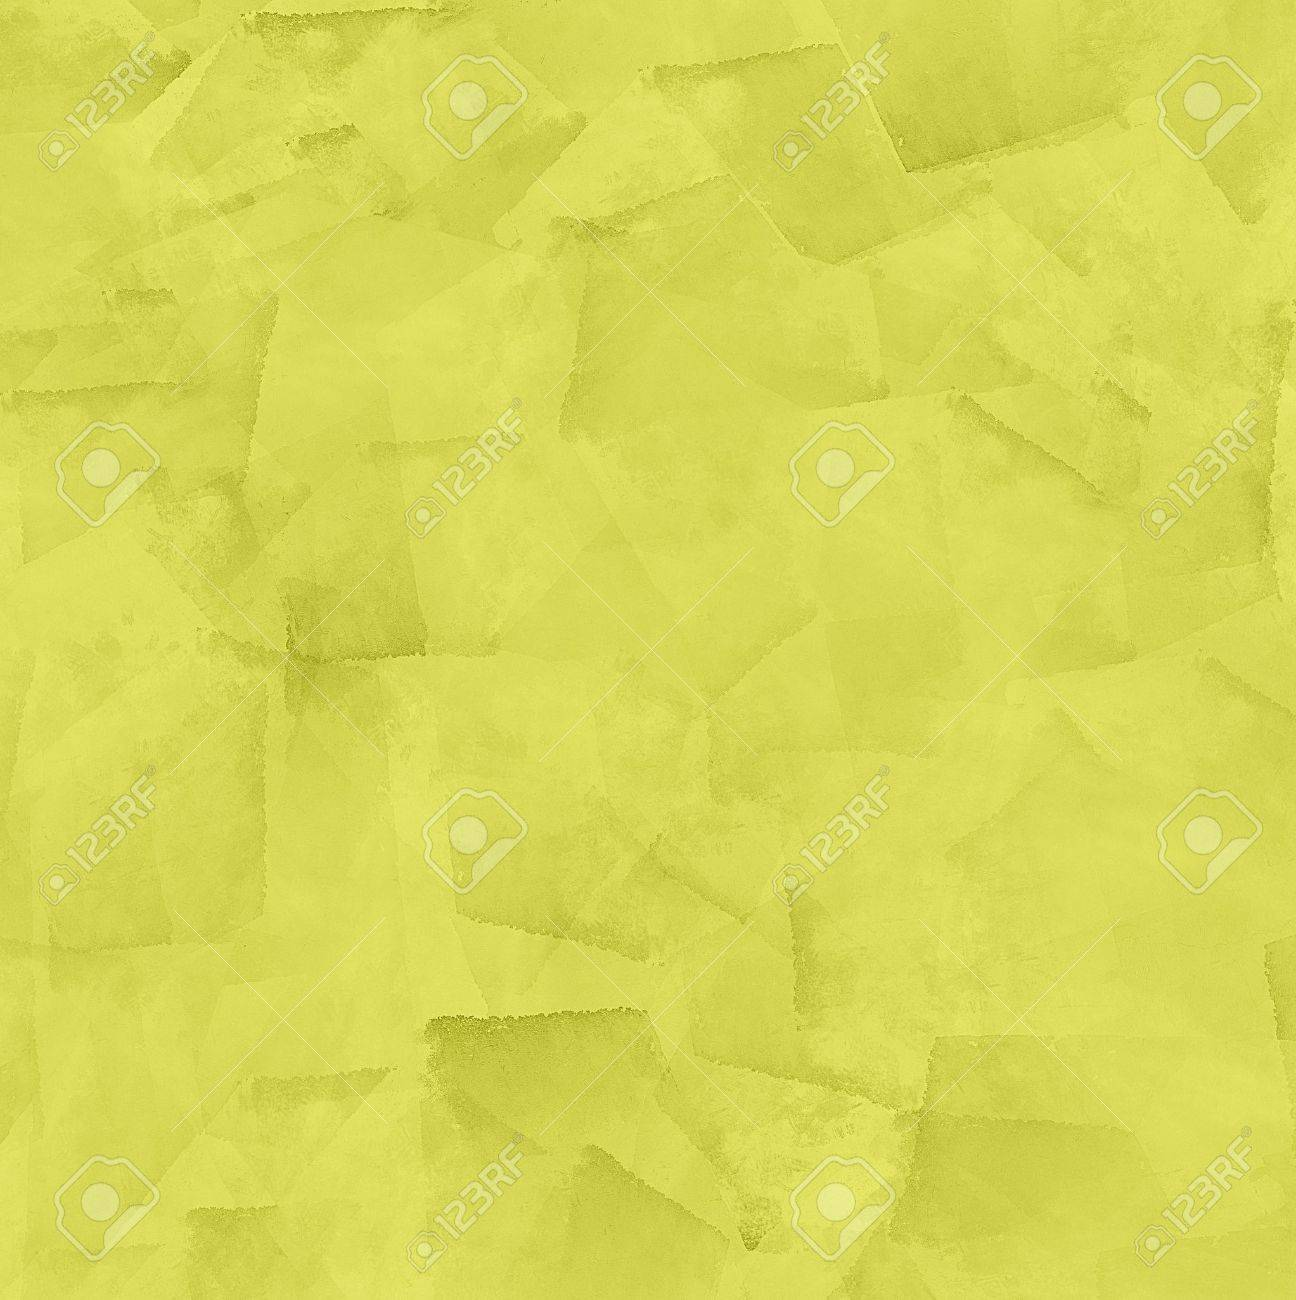 Abstract bright yellow grunge background Stock Photo - 10341635